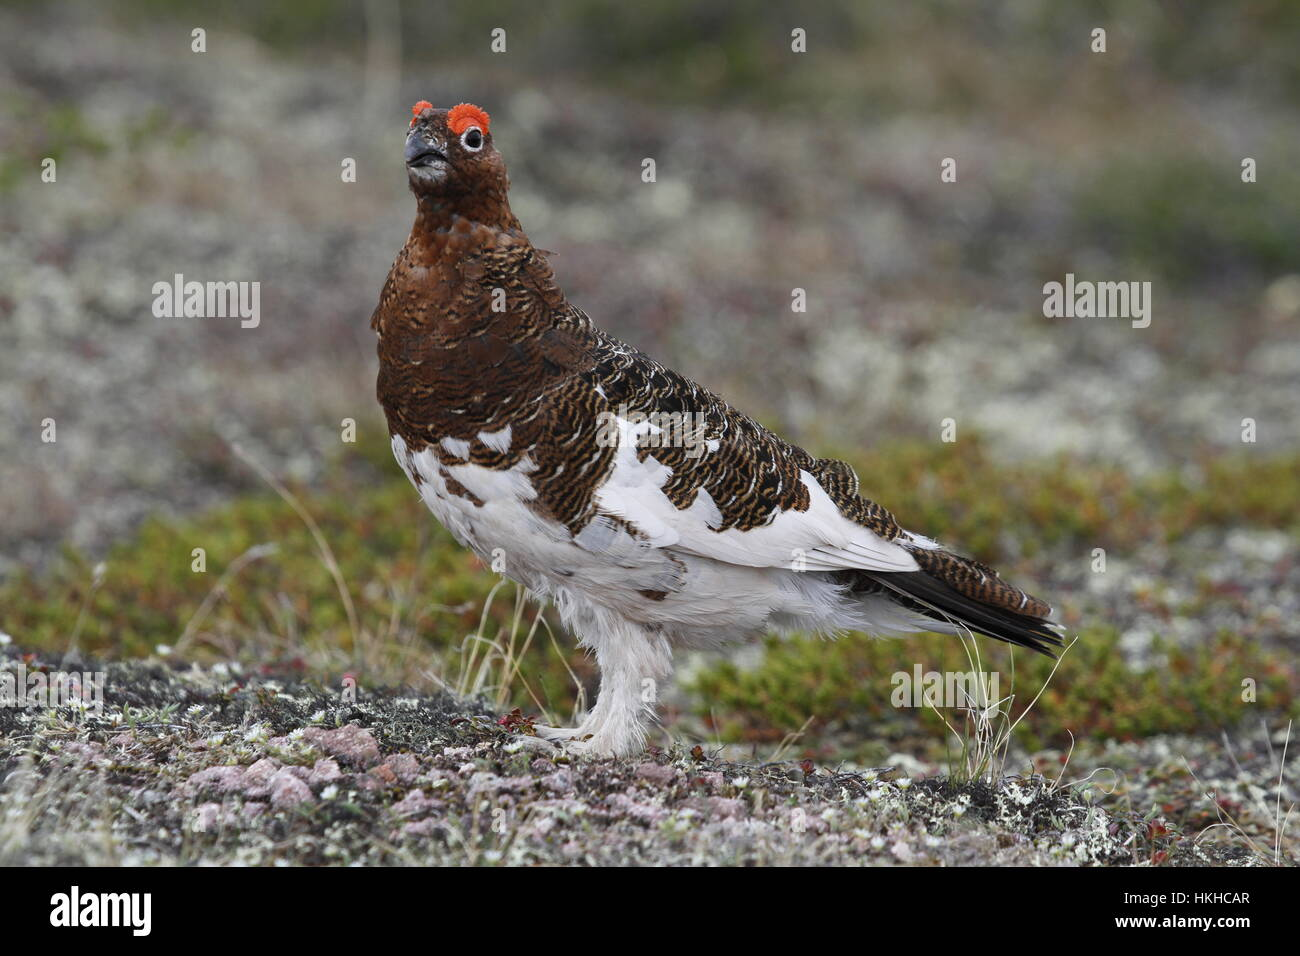 Male Willow Ptarmigan (or Grouse) showing fall colours in arctic tundra - Stock Image